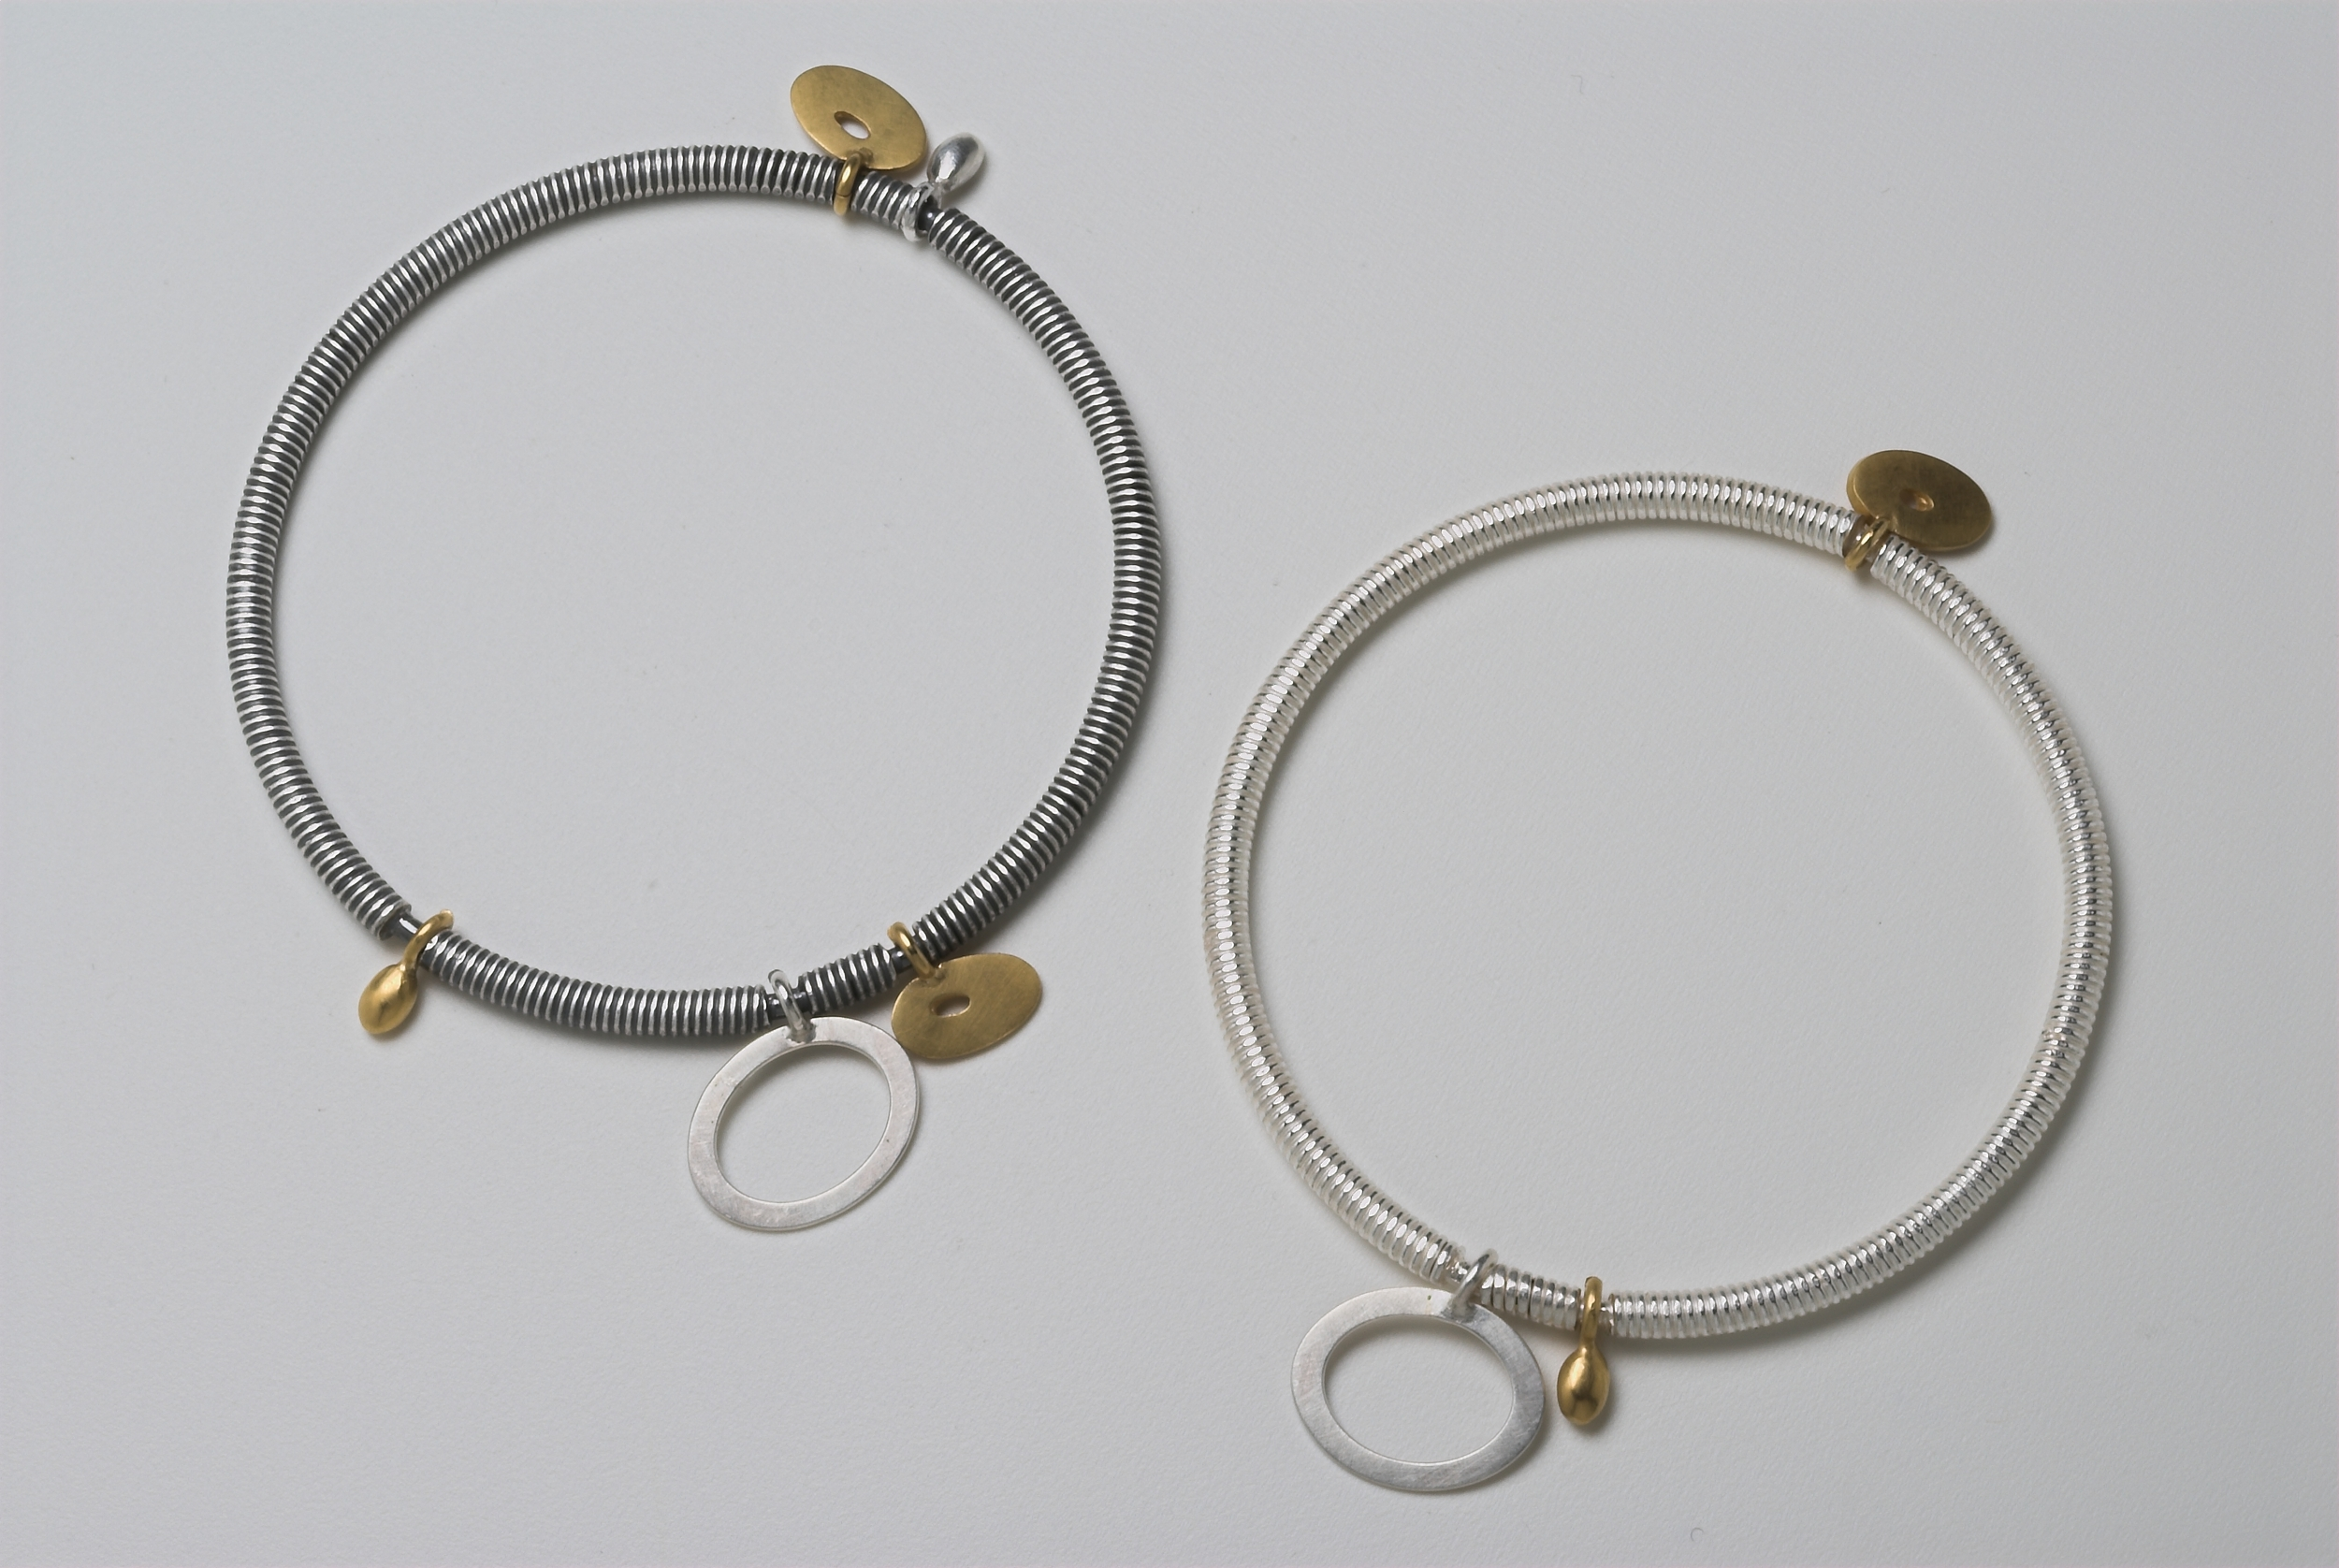 1.Silver and gold plated bangles £250